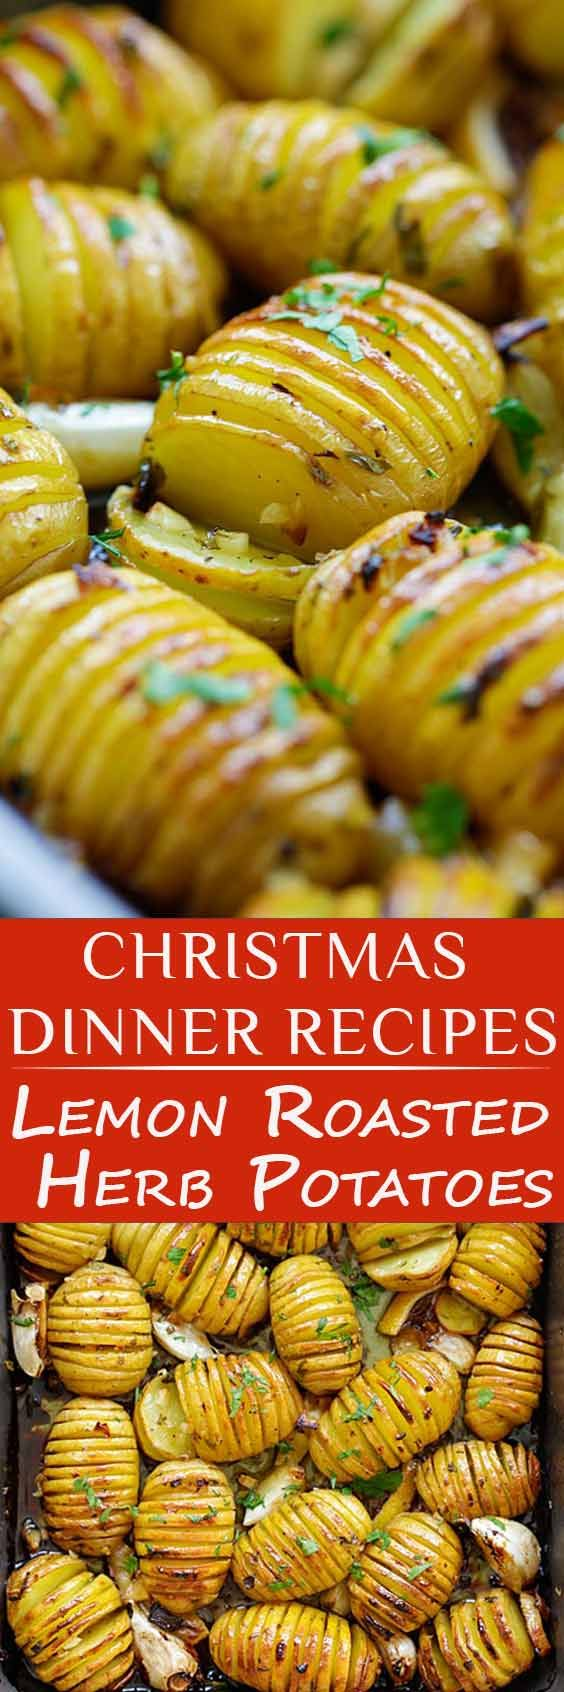 easy christmas dinner recipes that will not drive you away from home